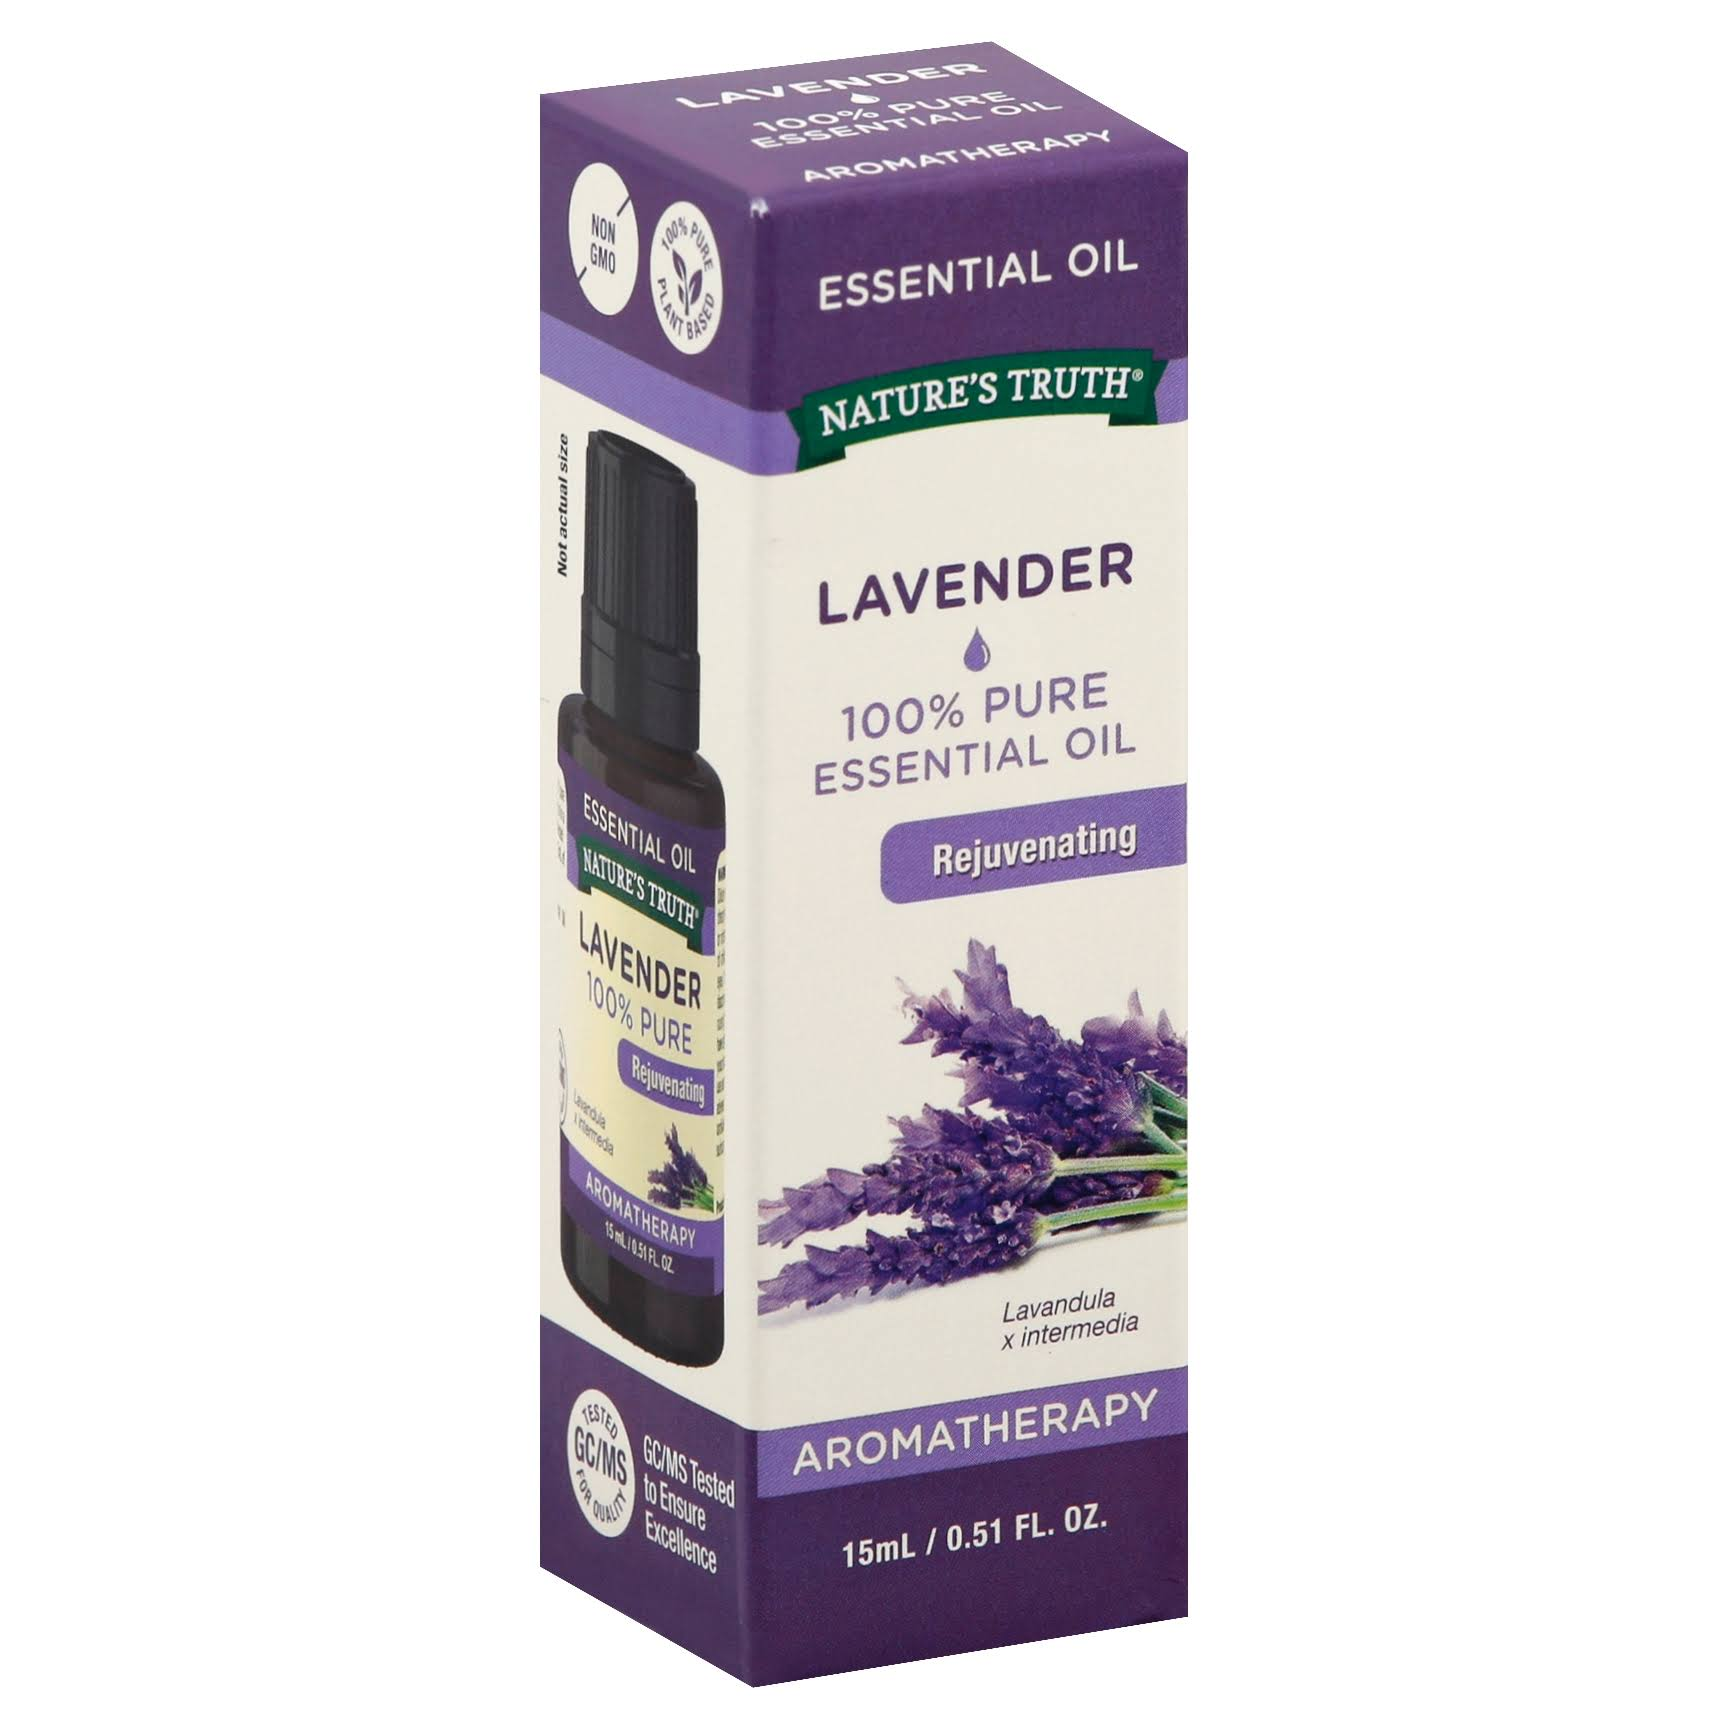 Nature's Truth Aromatherapy Pure Essential Oil - Lavender, 15ml